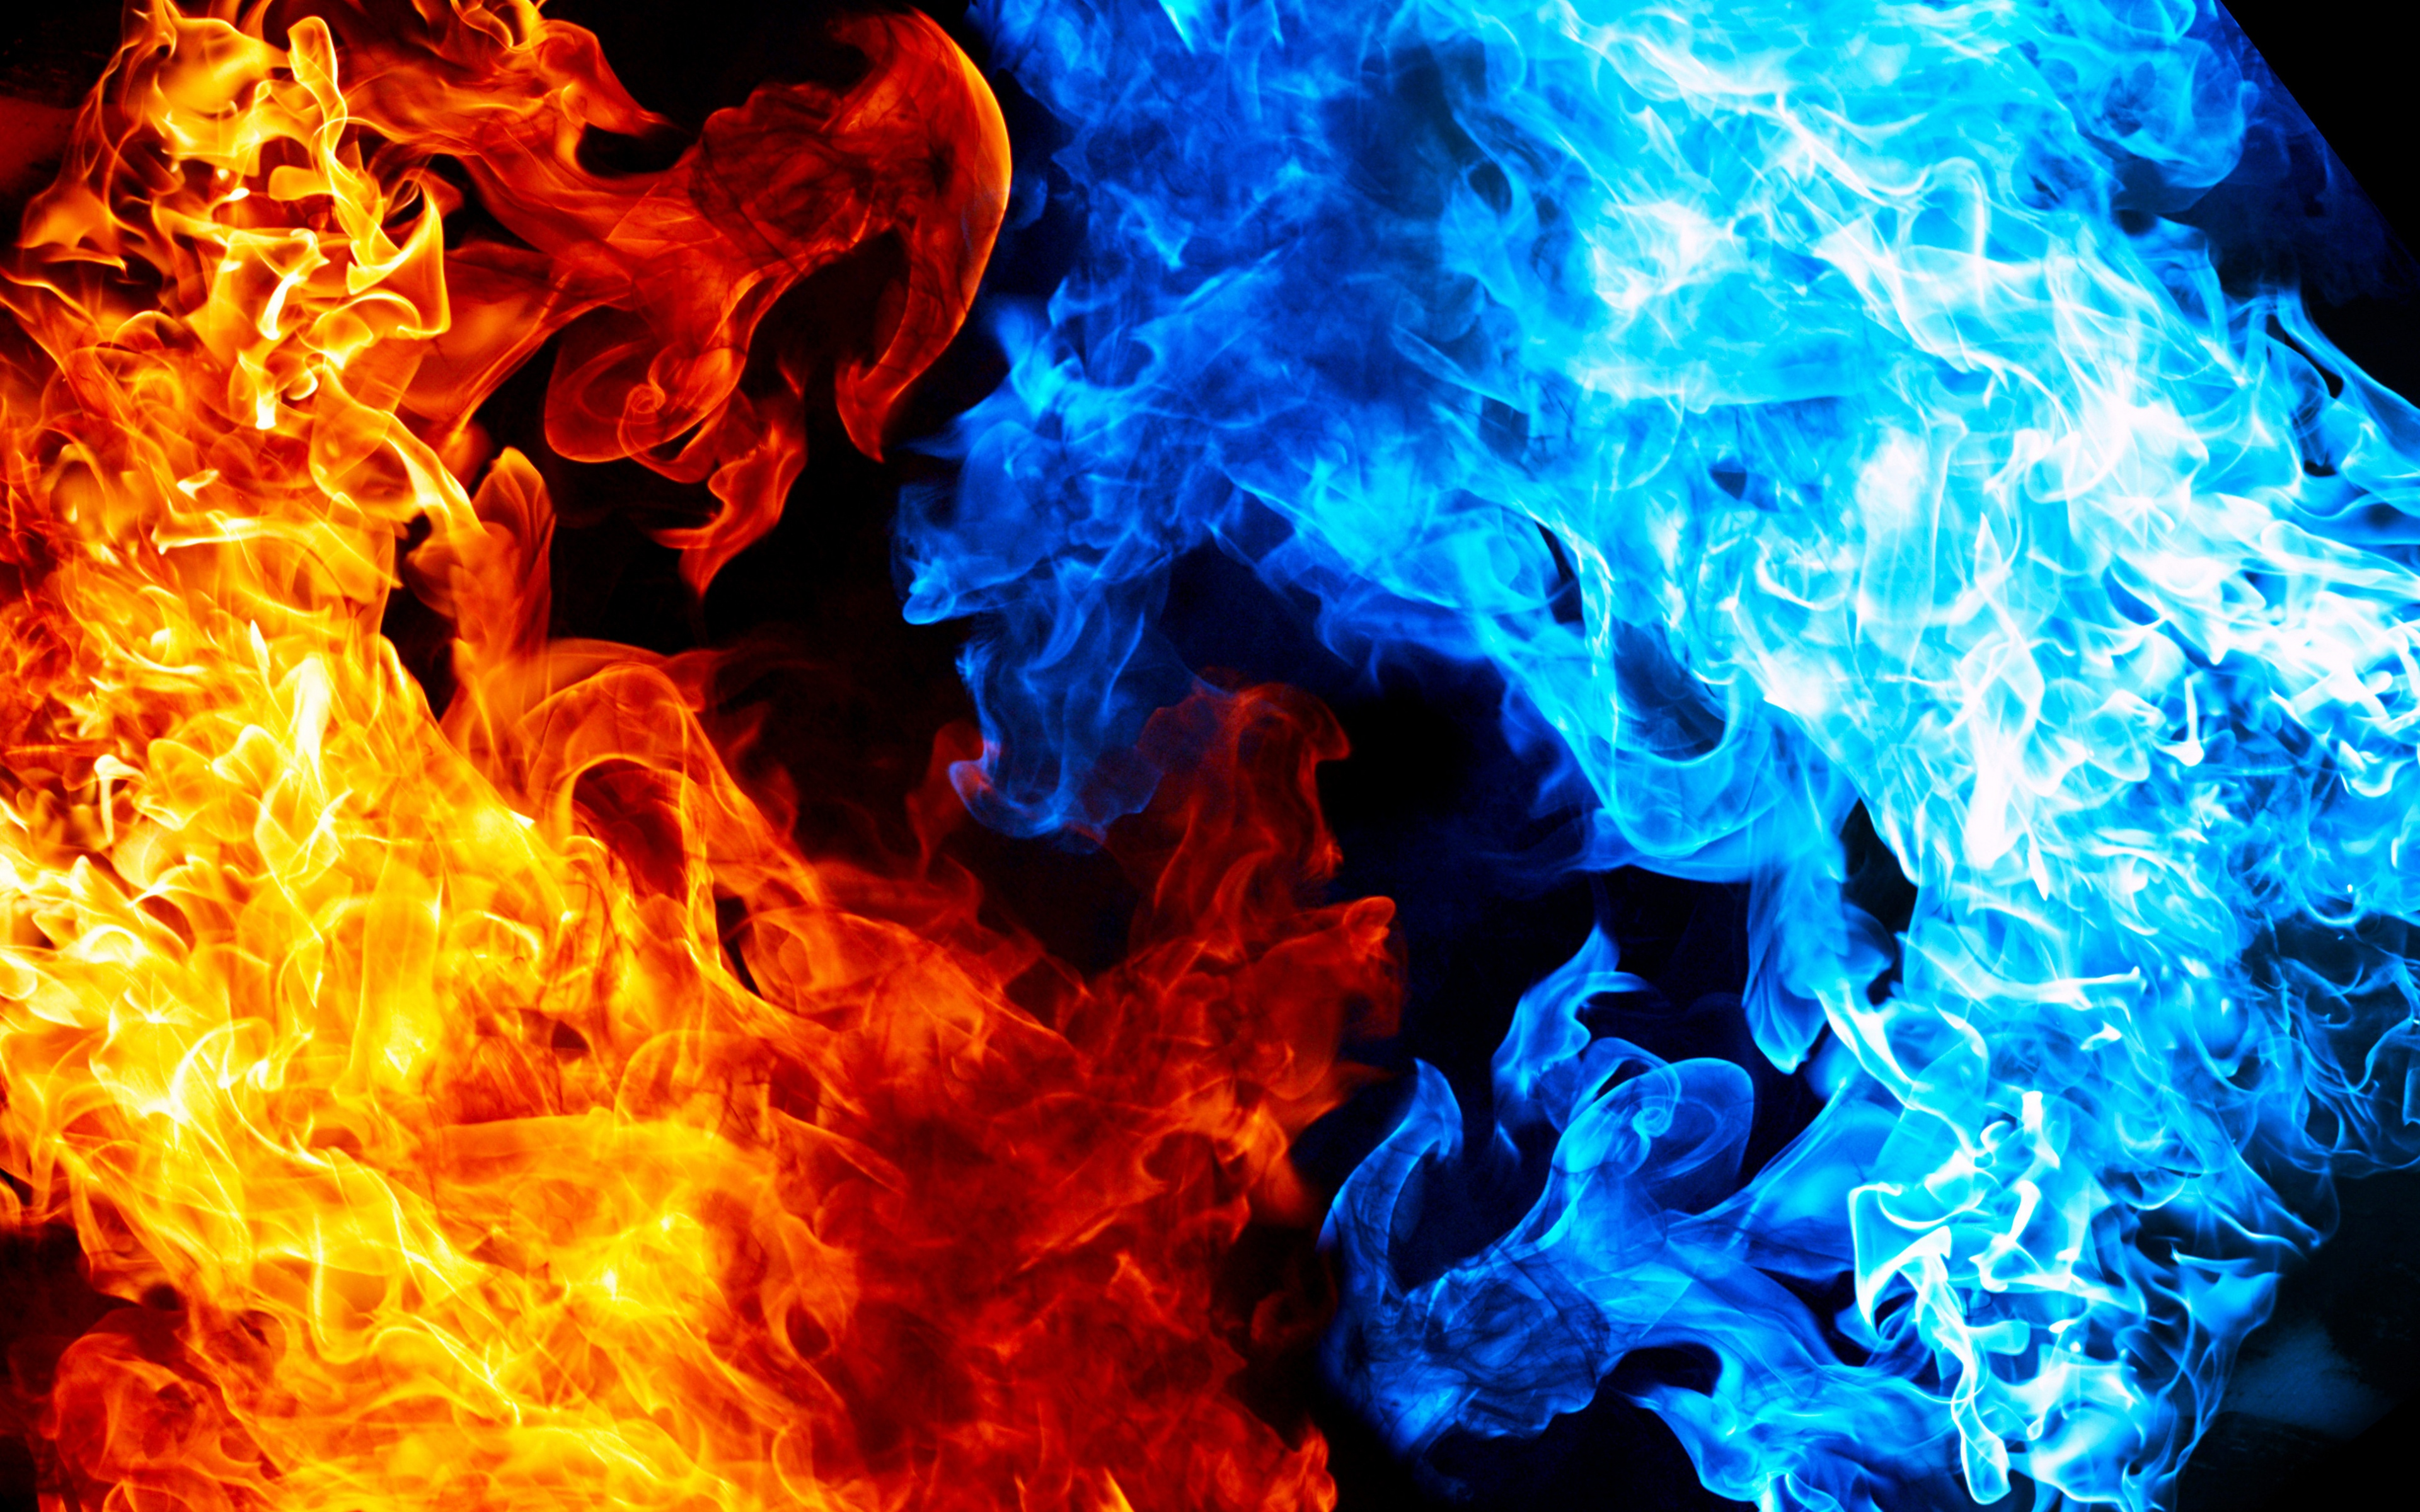 Red Yellow Blue Flame Texture Pattern Flames Fire Smoke WallpapersByte 3840x2400